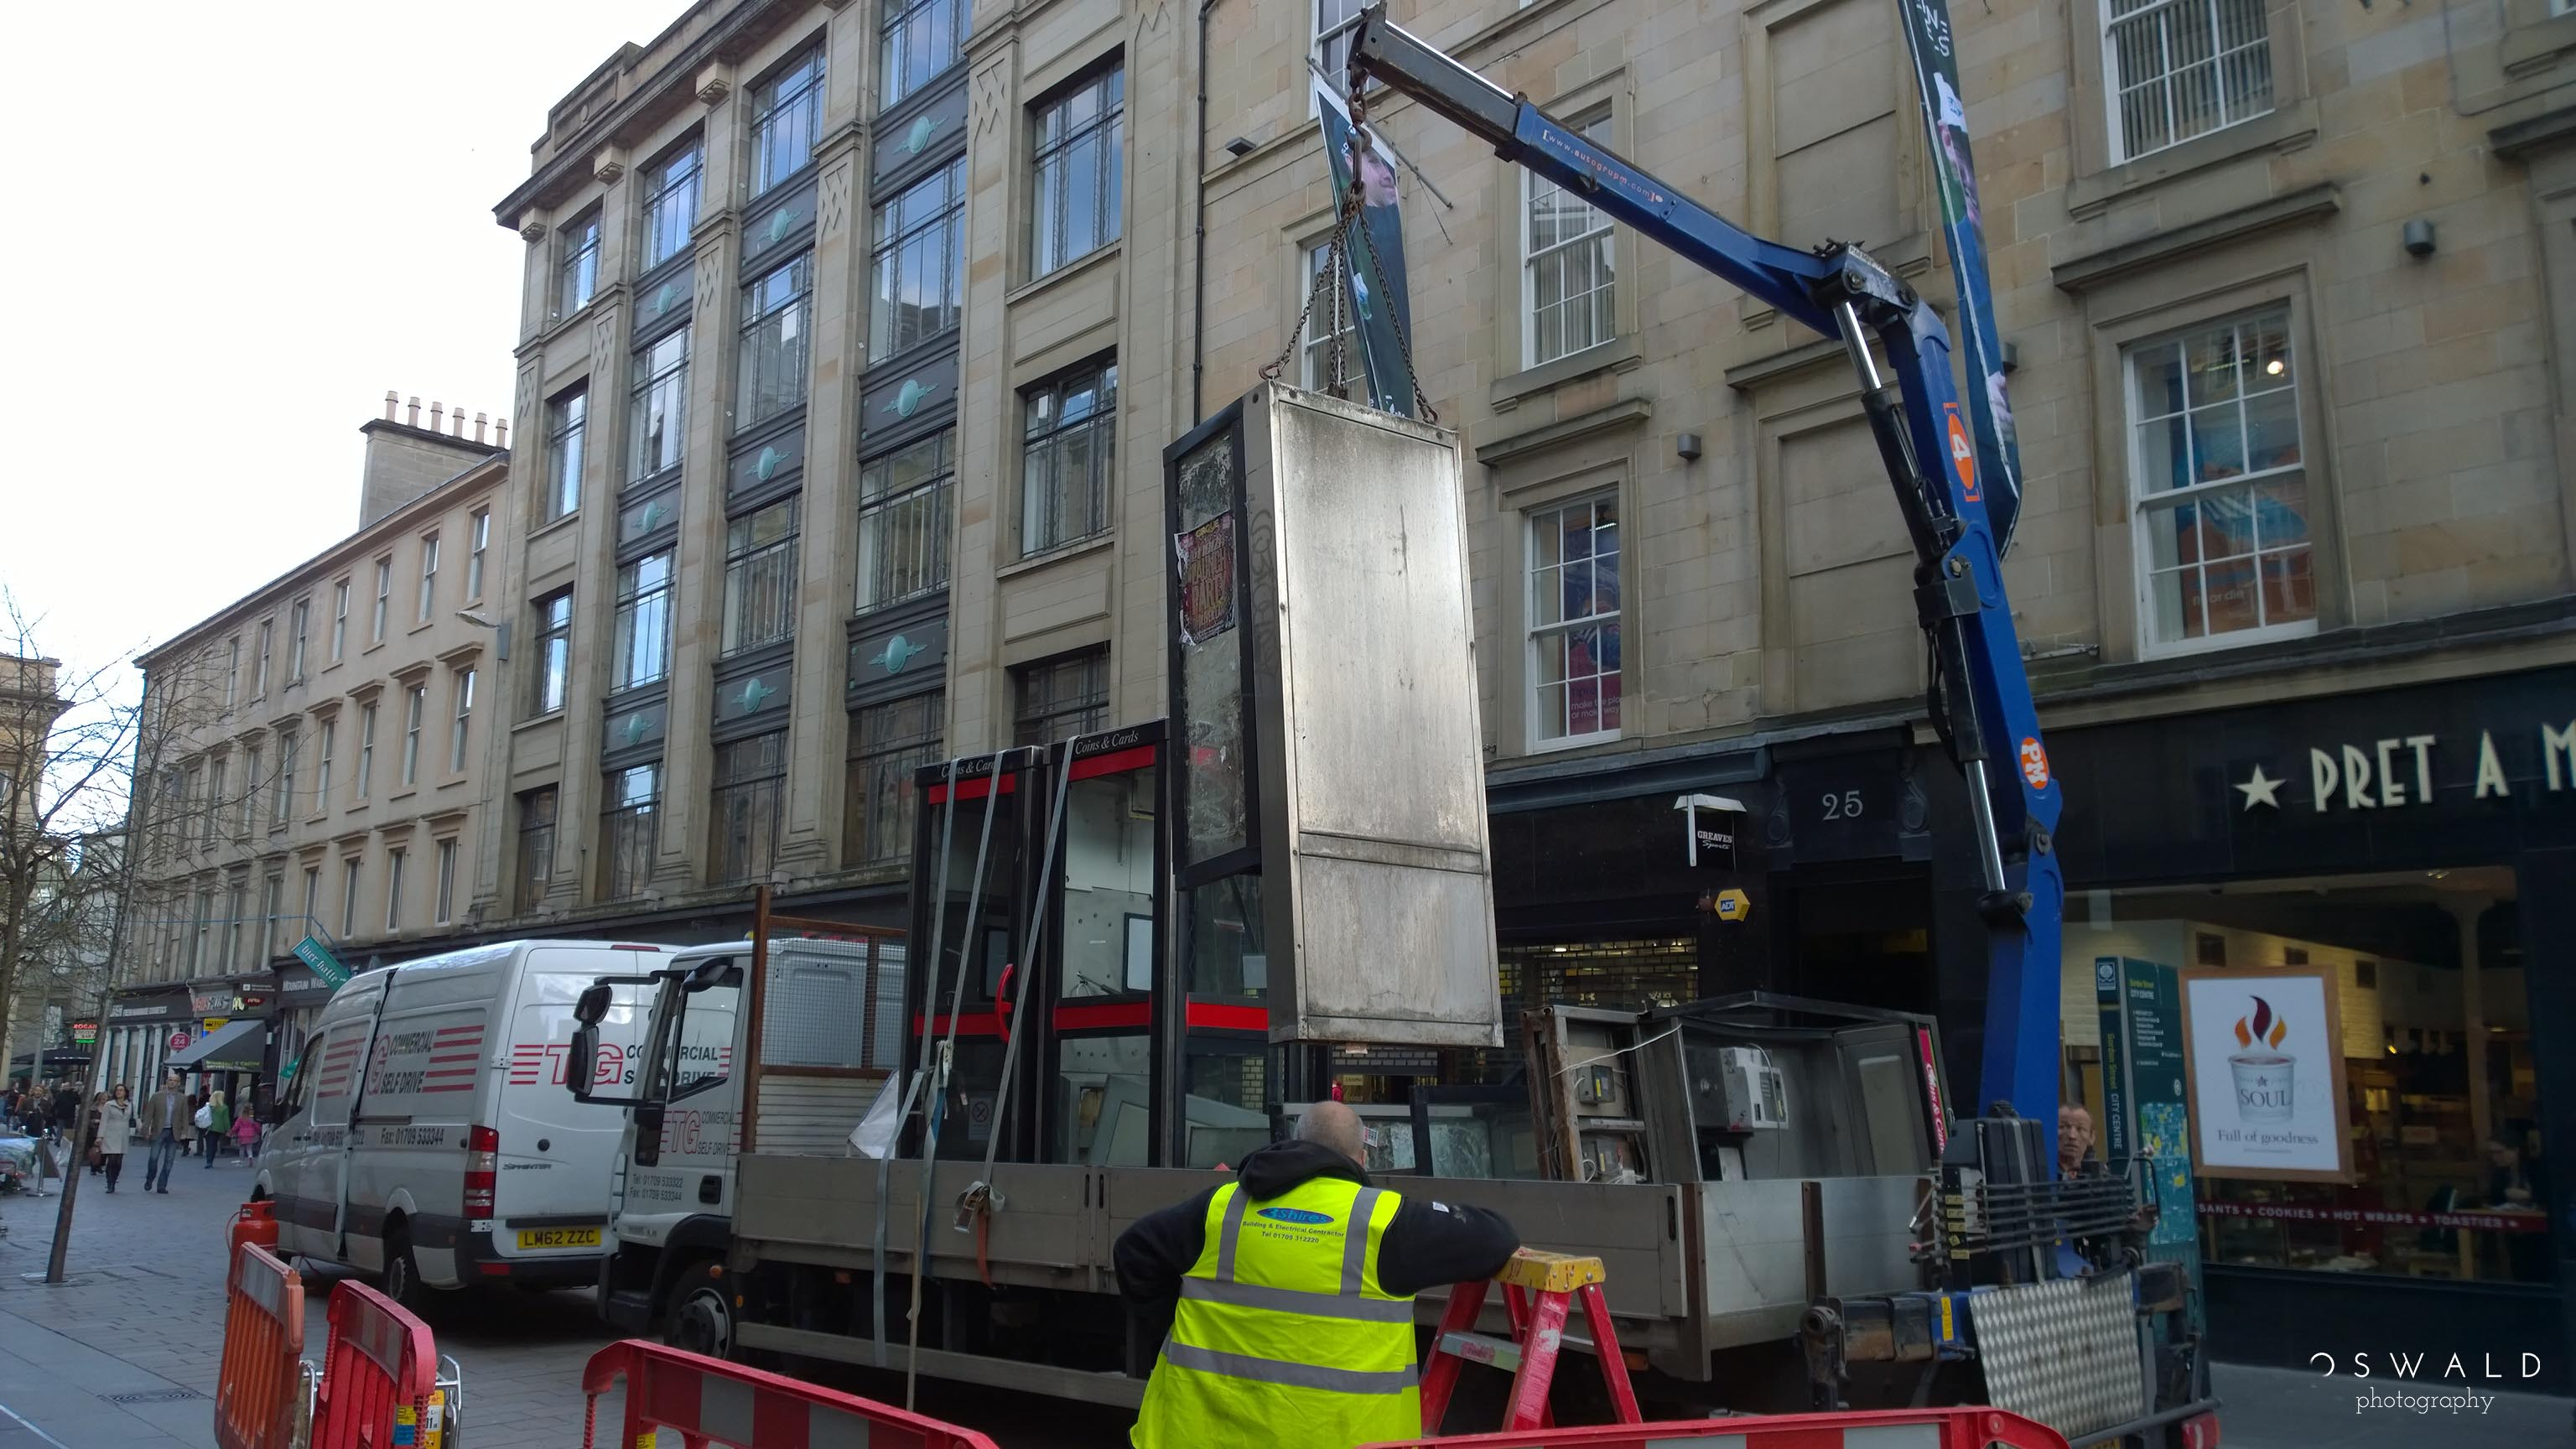 Photograph of a Glasgow phone booth being removed